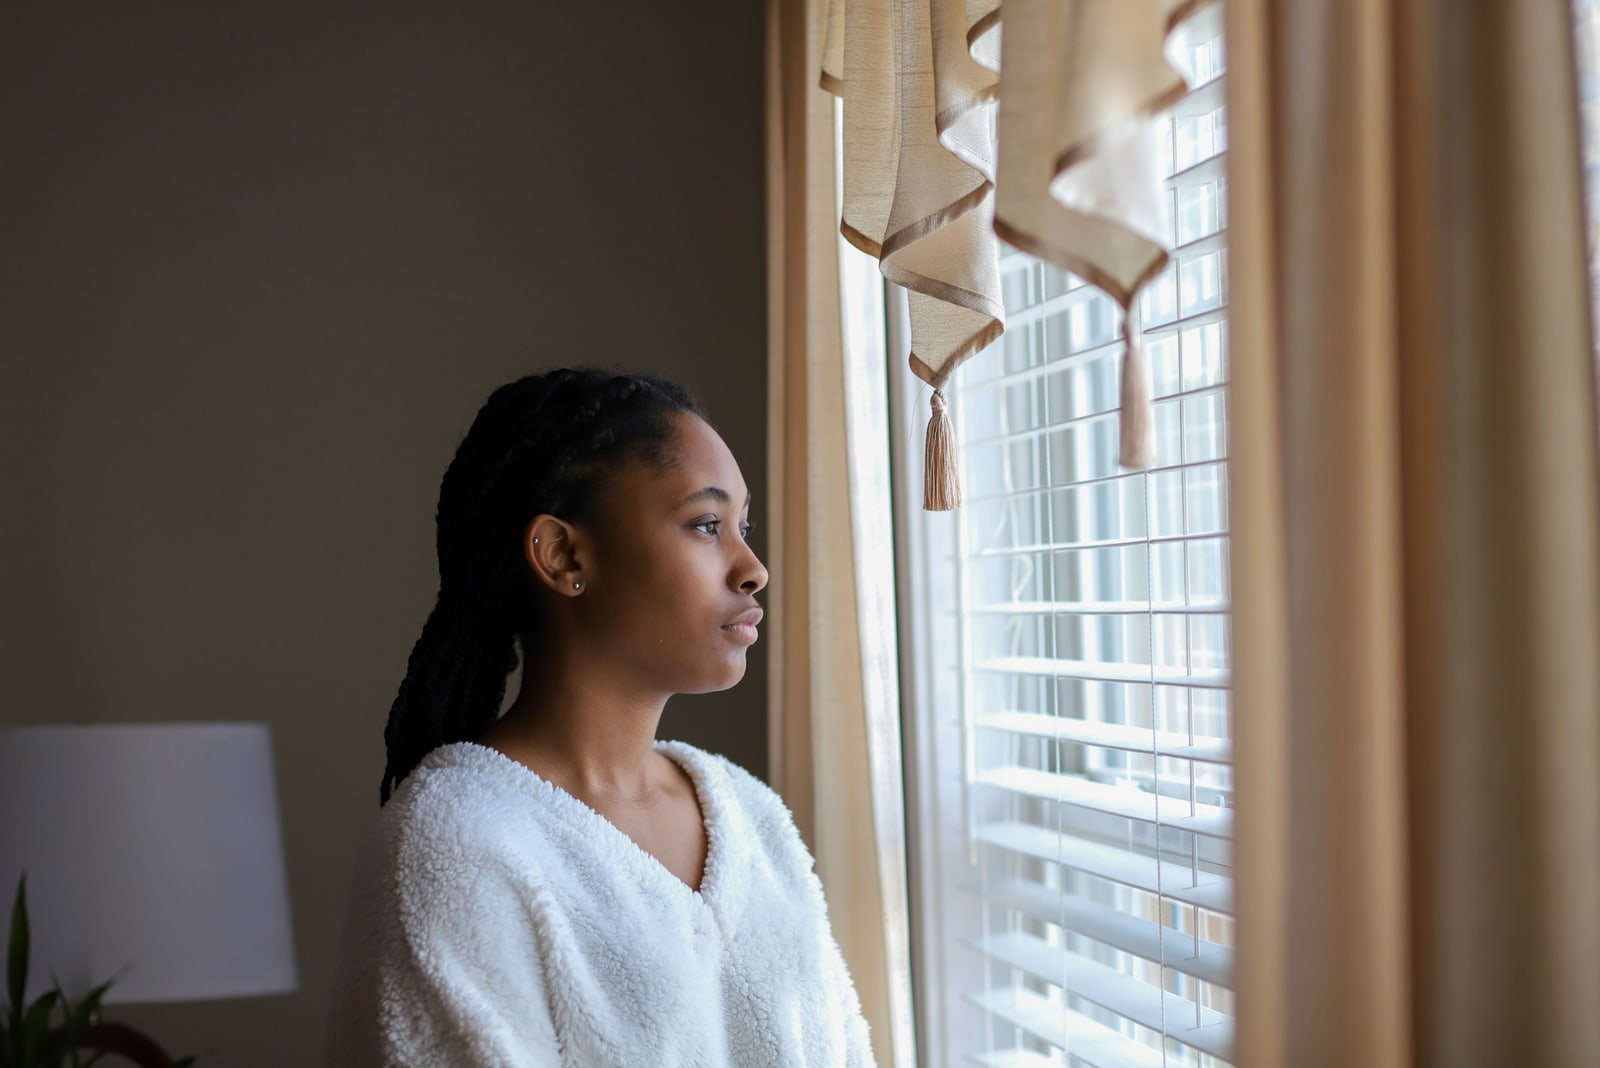 teenaged girl looking out a window and feeling sad